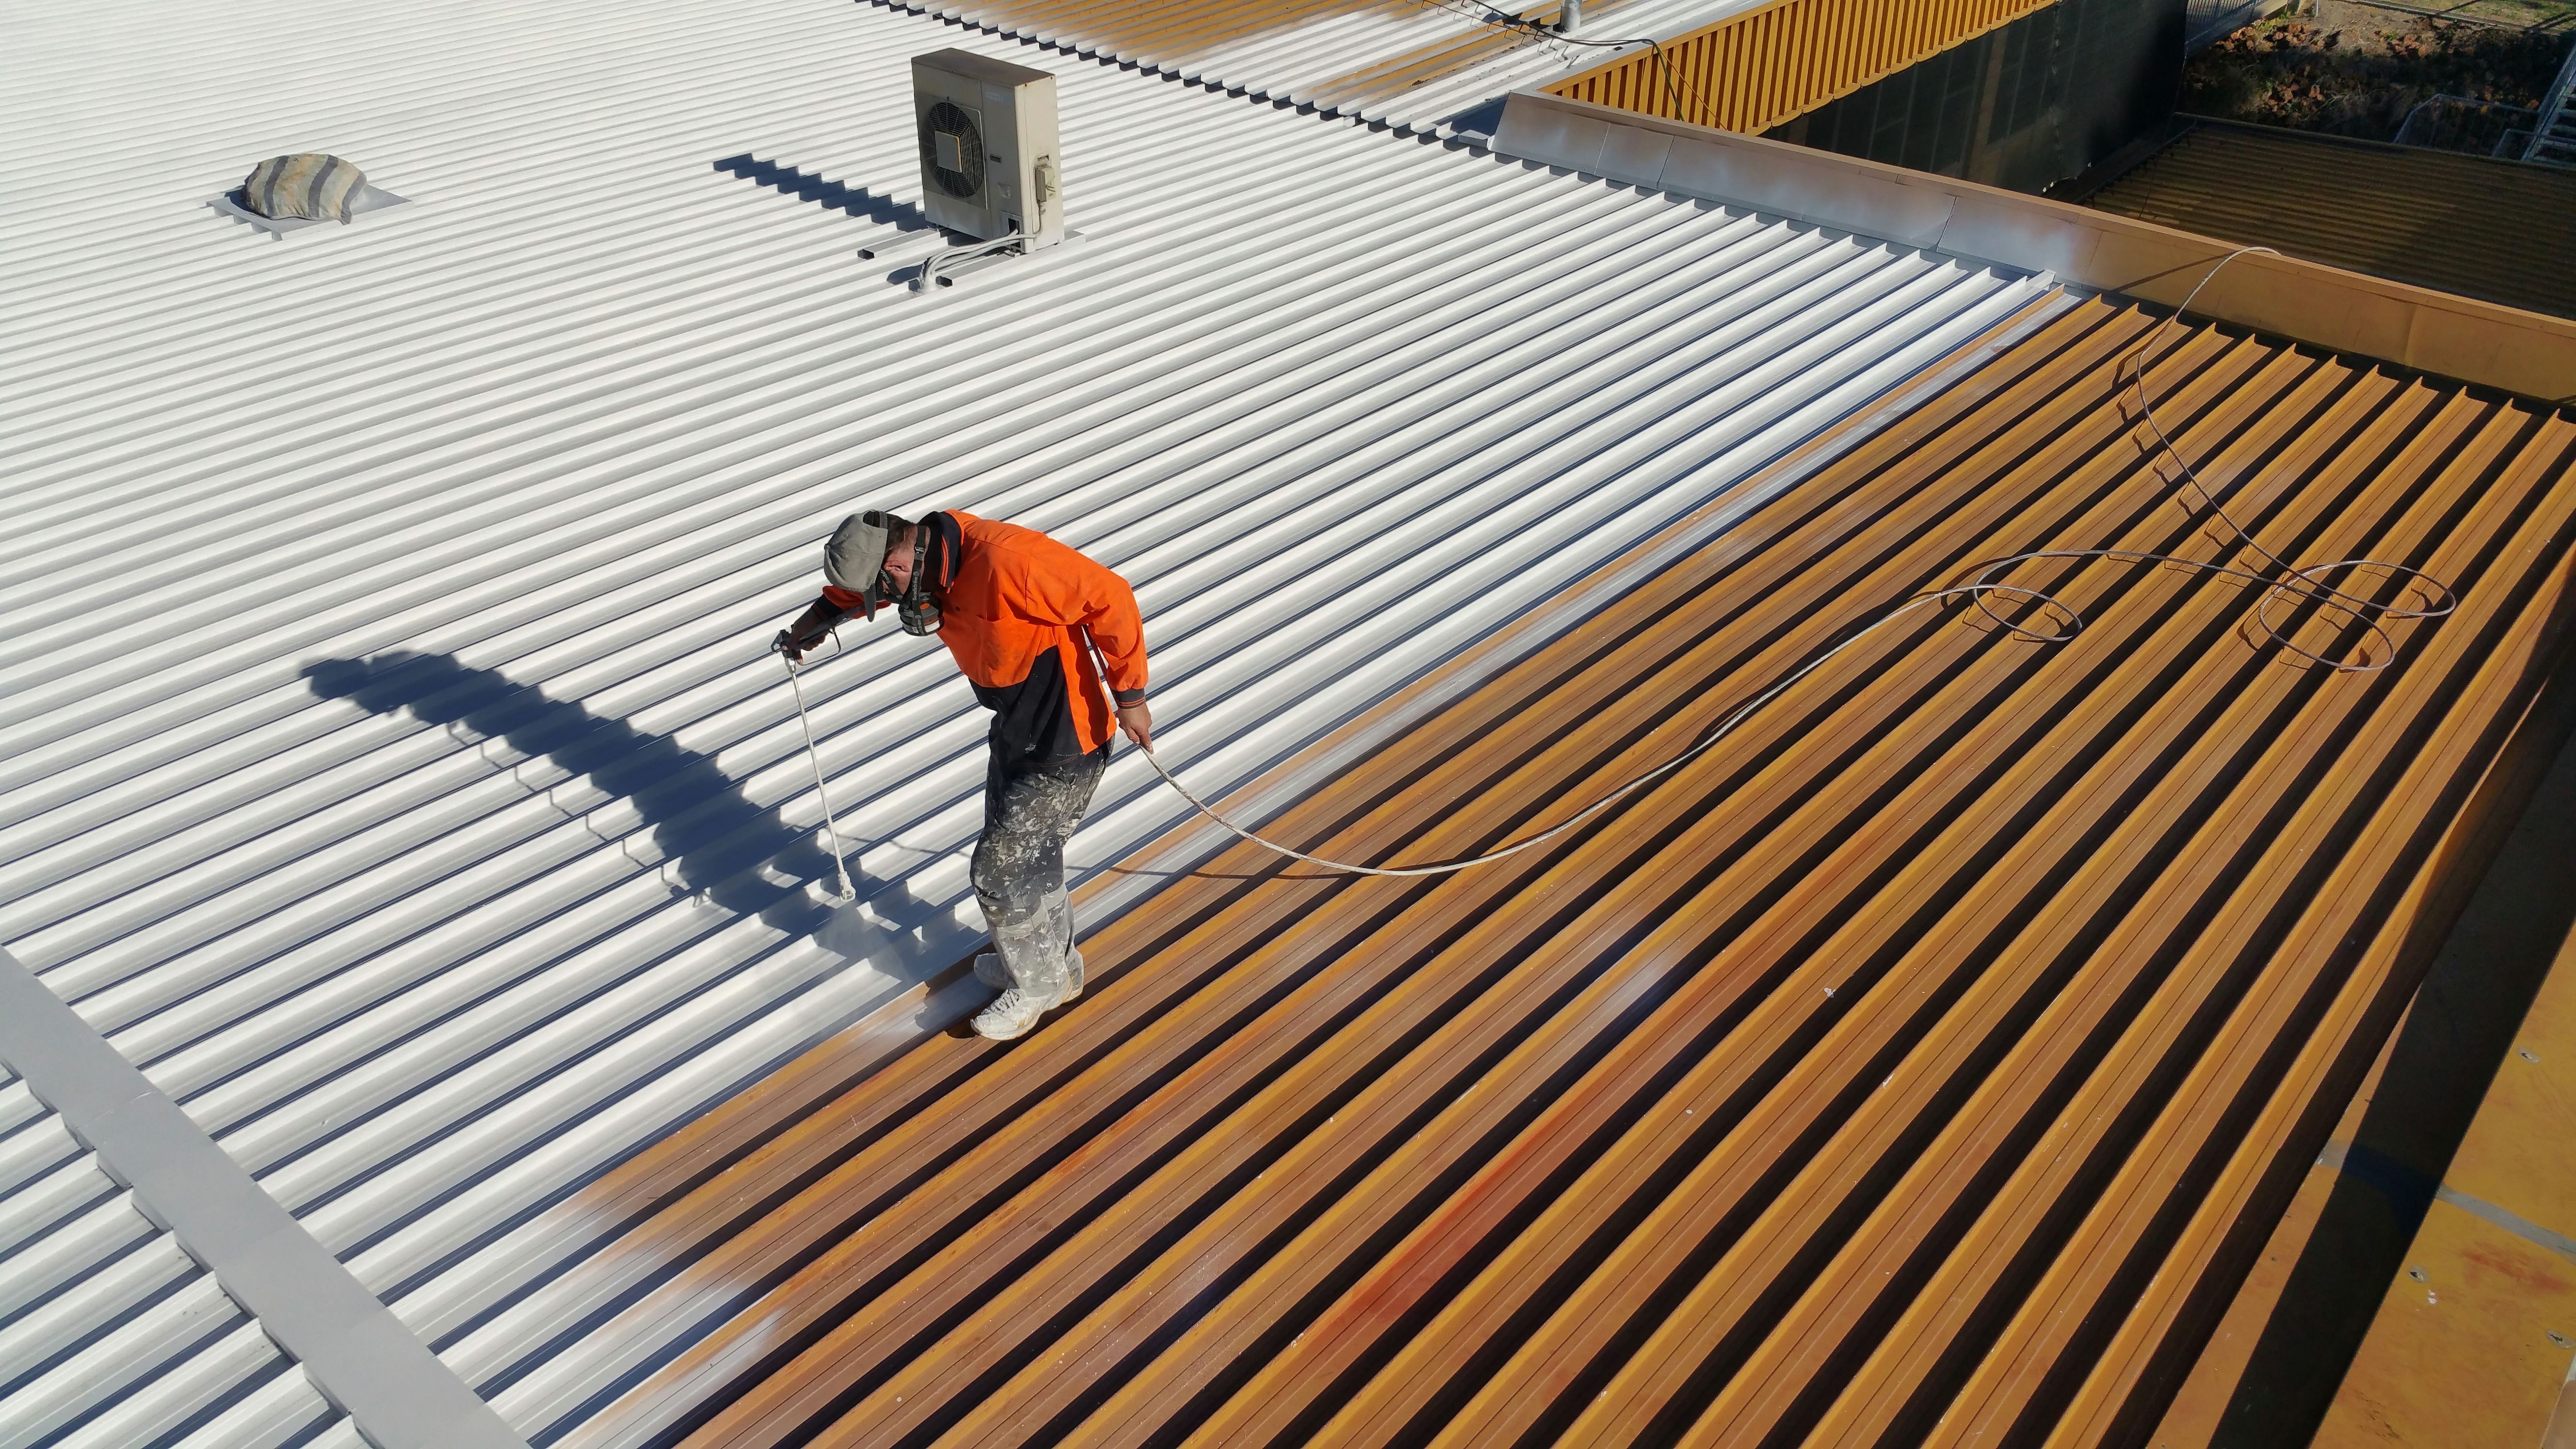 Pin By Sombreeero On 1 In 2020 Roof Restoration Membrane Roof Industrial Roofing